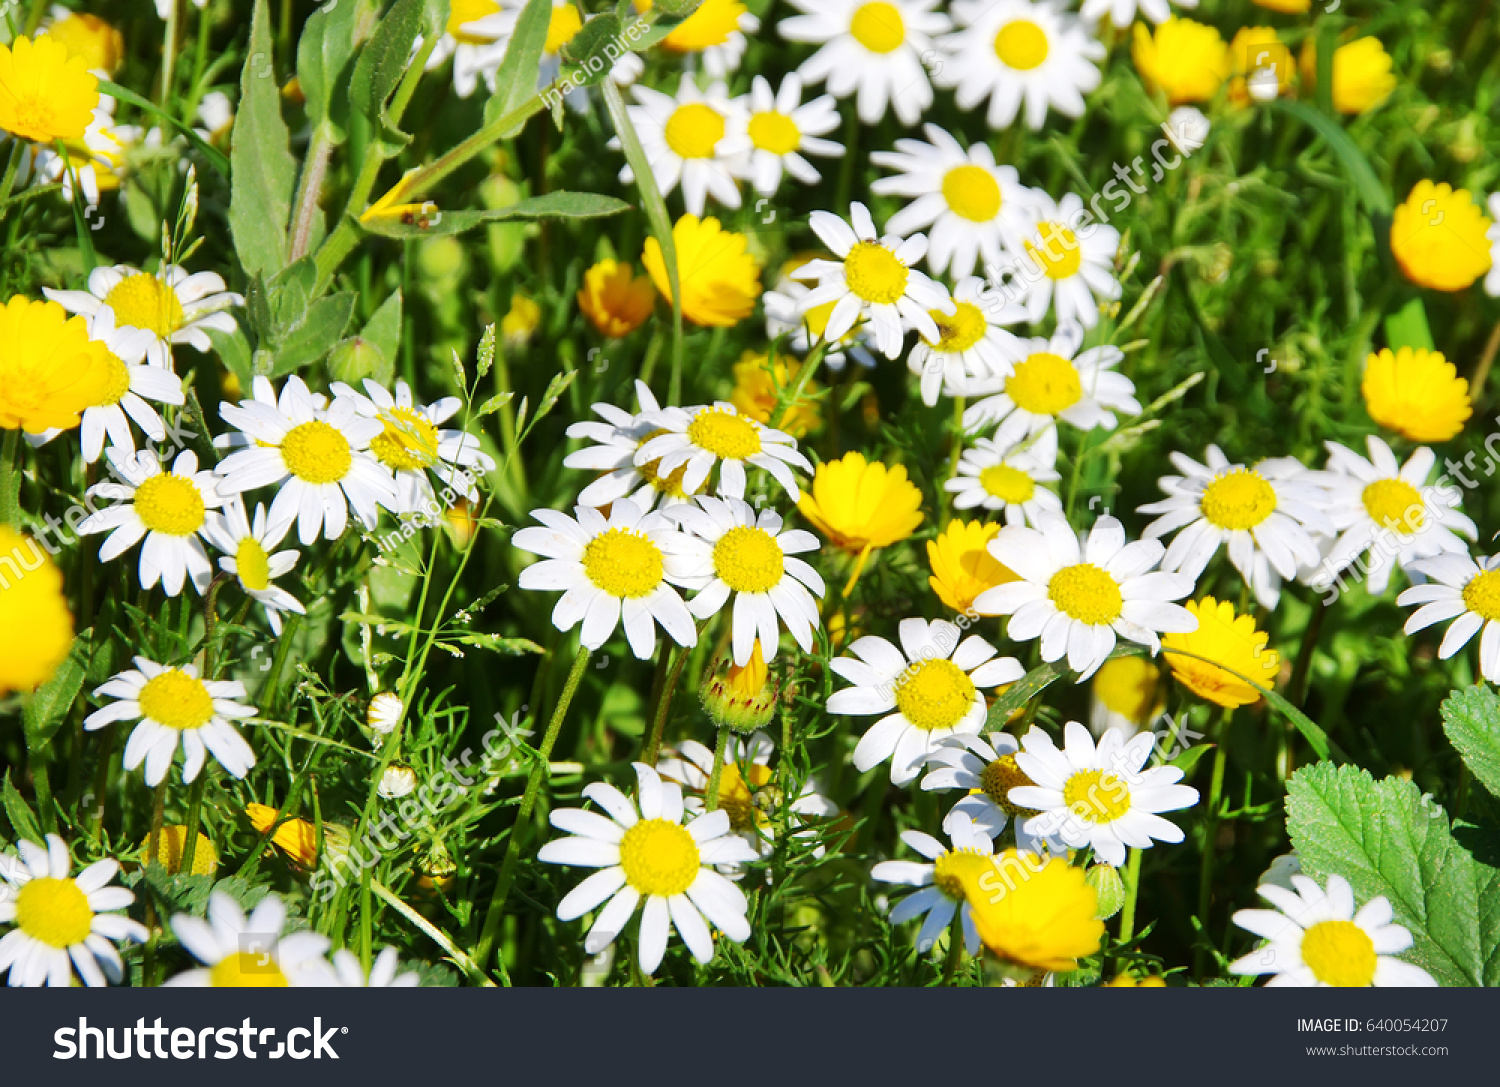 Daisy Flower Background Field Stock Photo Edit Now 640054207